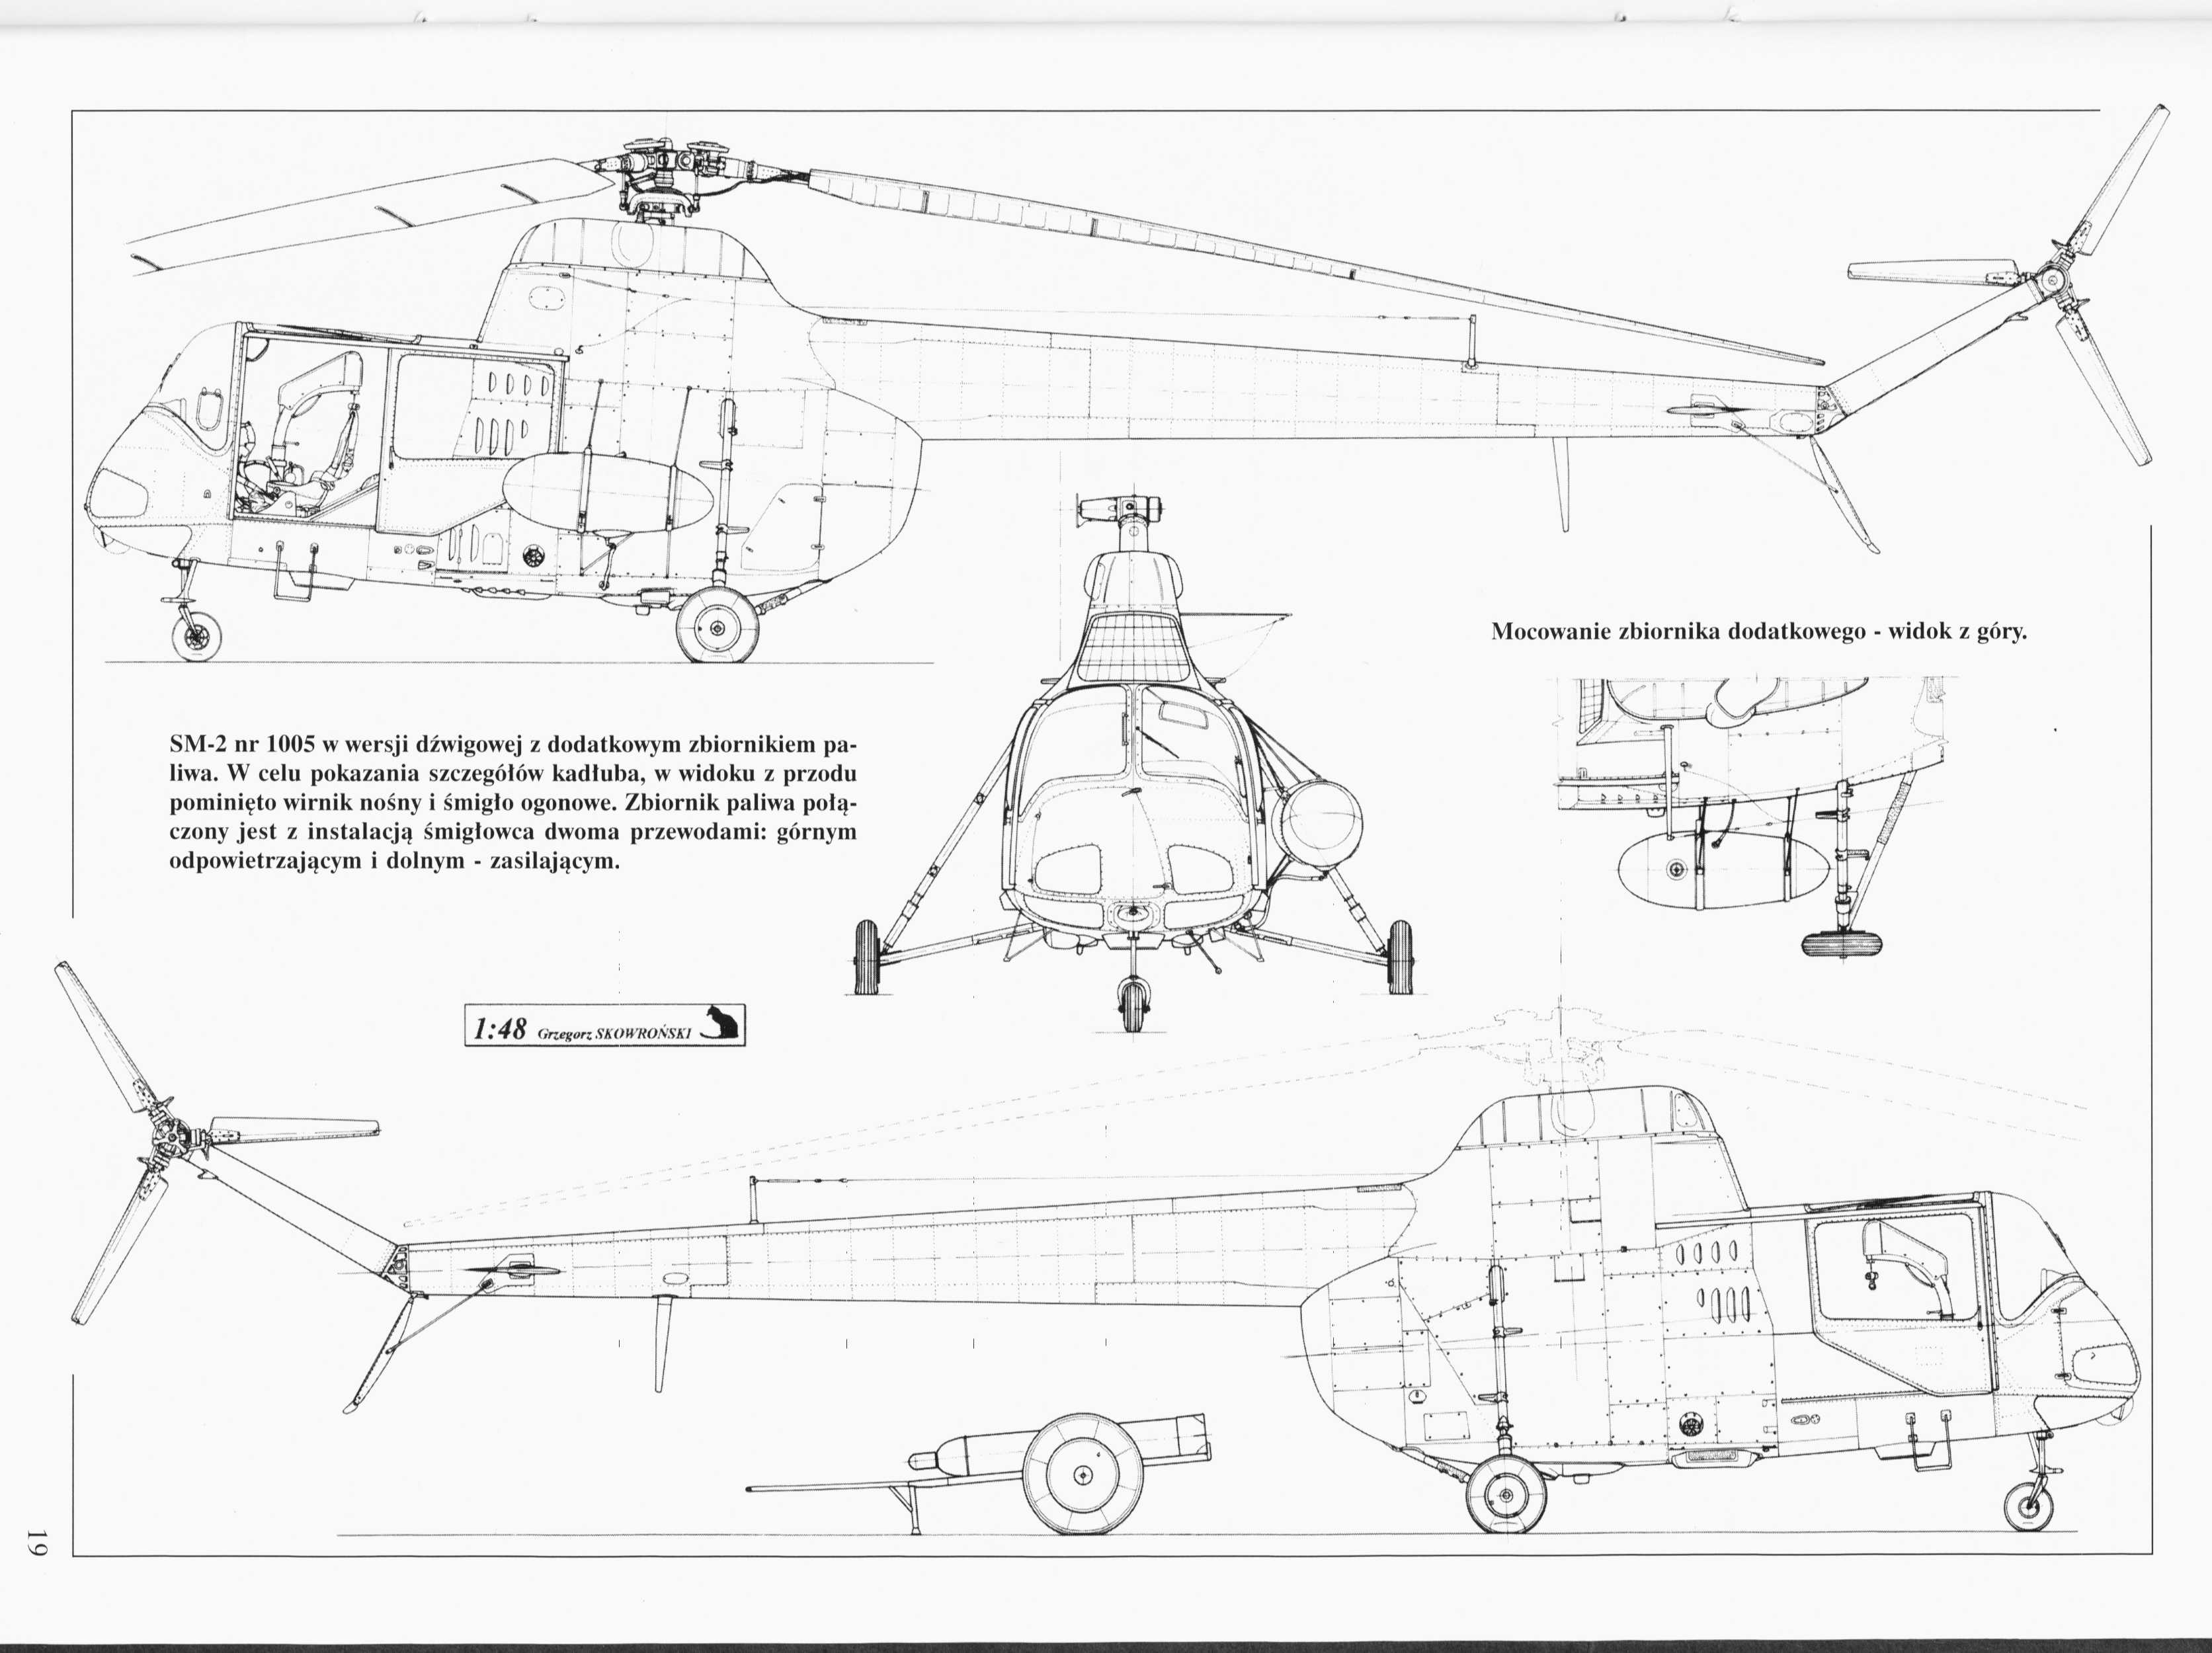 PZL SM-2 blueprint